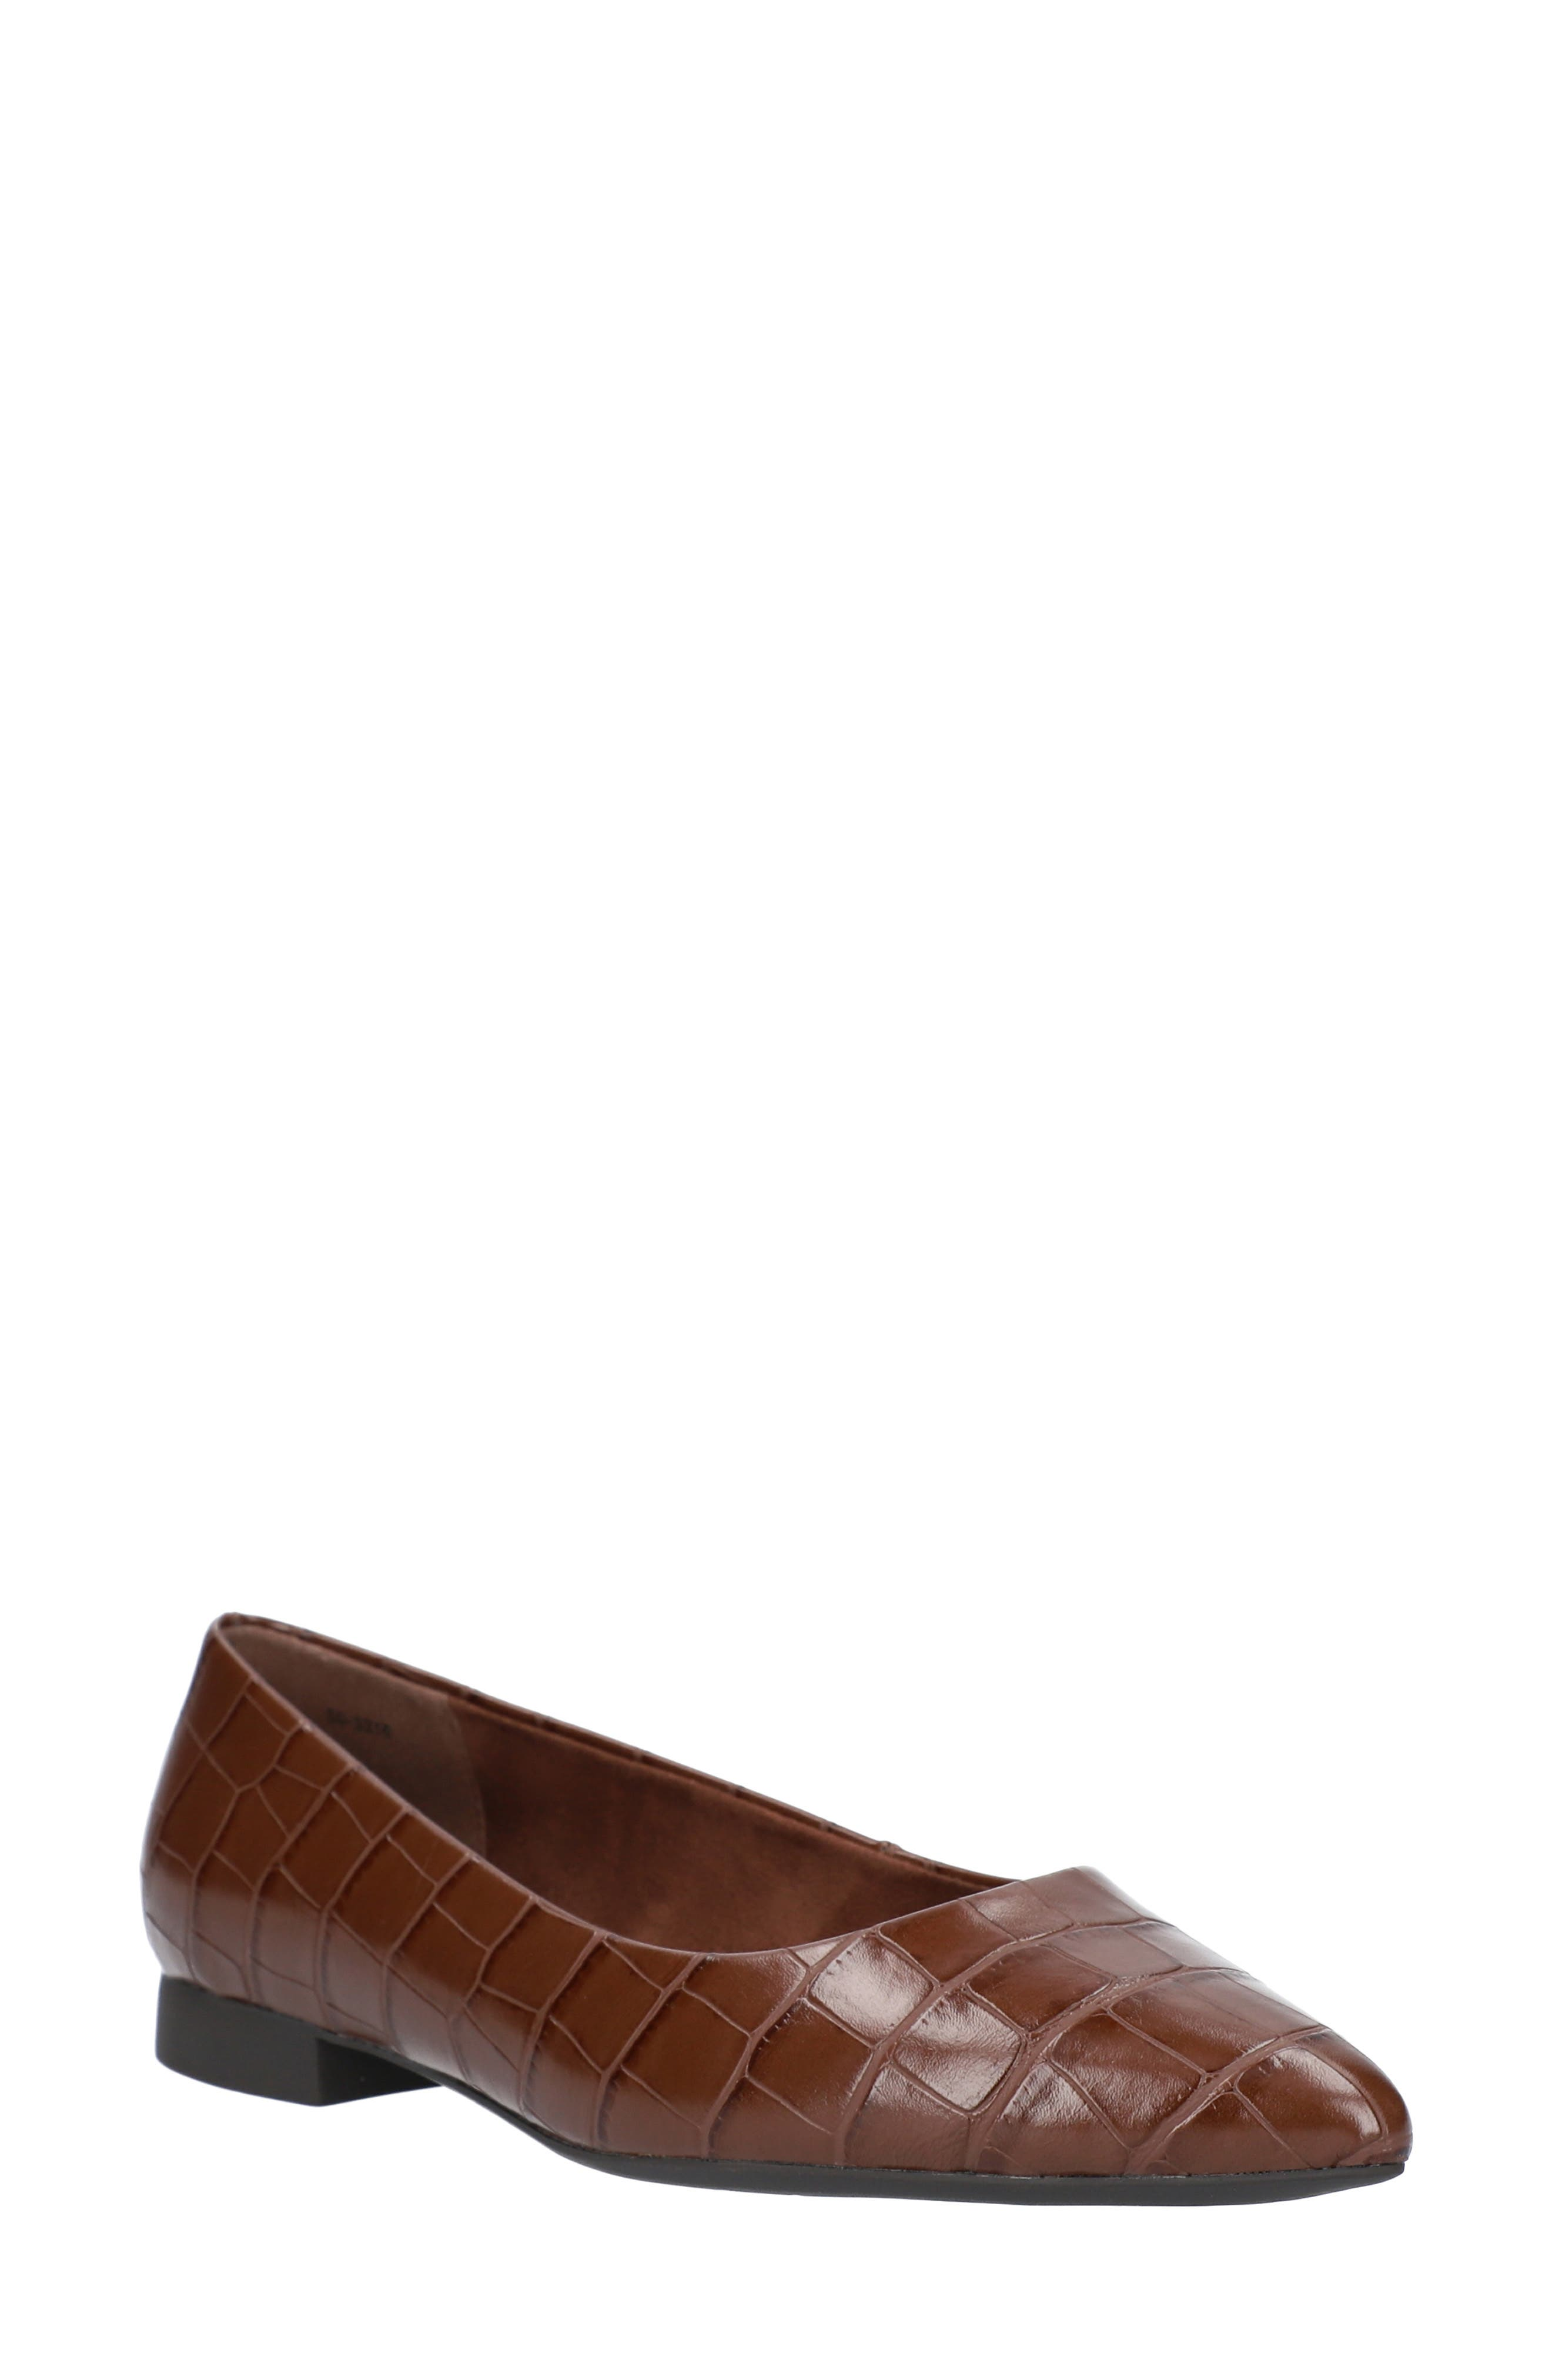 Viven Pointed Toe Flat